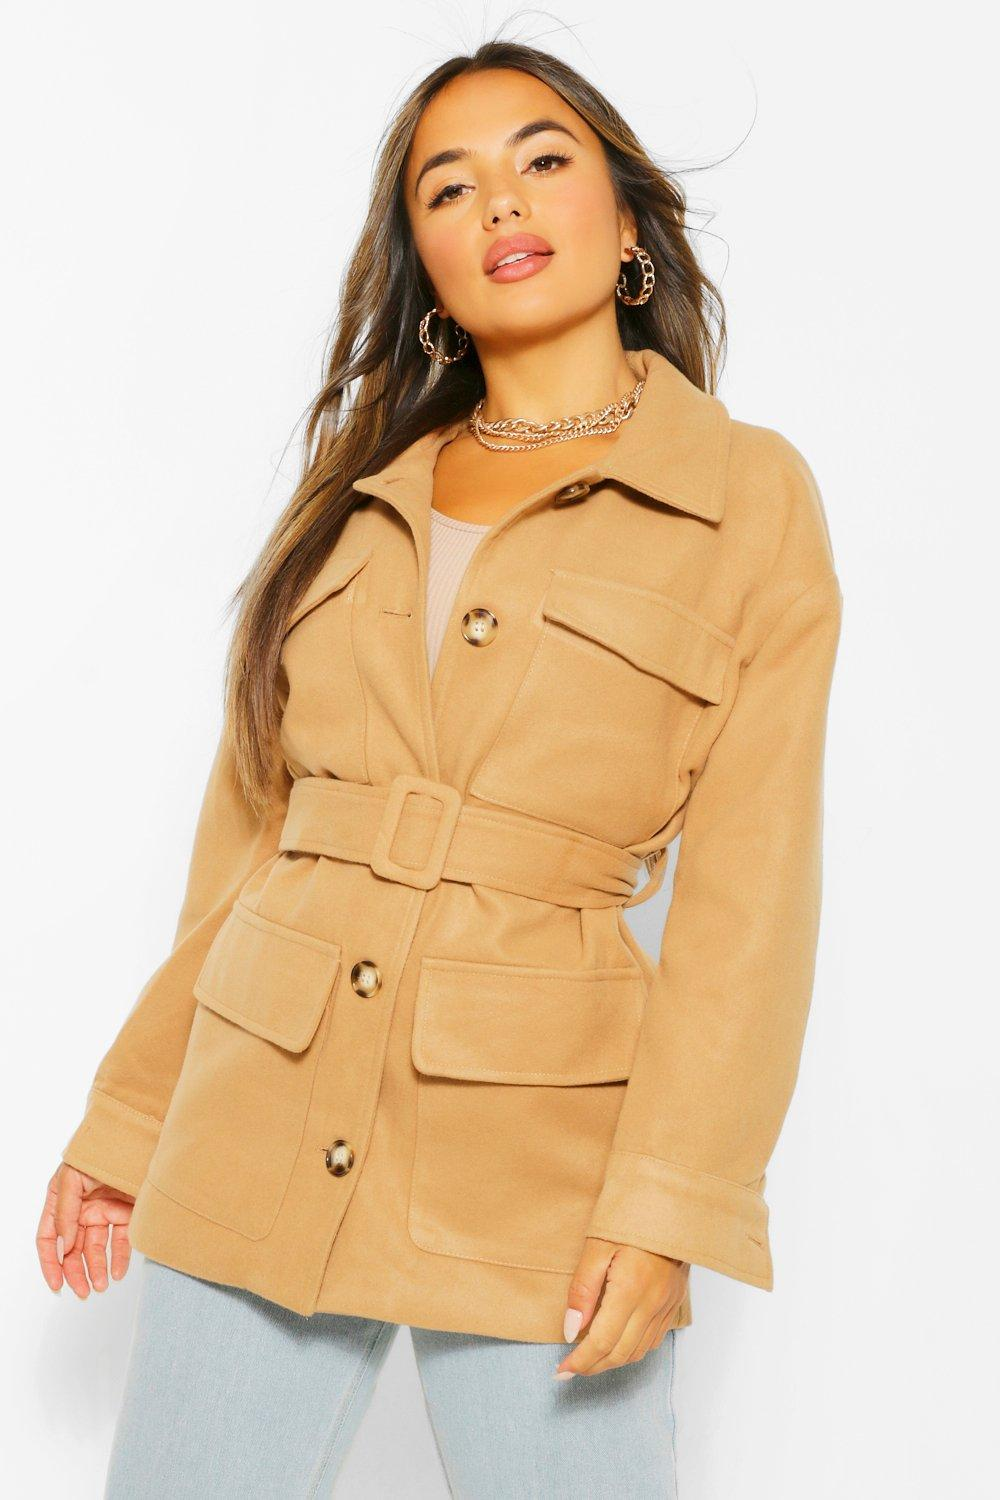 1940s Style Coats and Jackets for Sale Womens Petite Wool Look Belted Jacket - Beige - 10 $38.50 AT vintagedancer.com